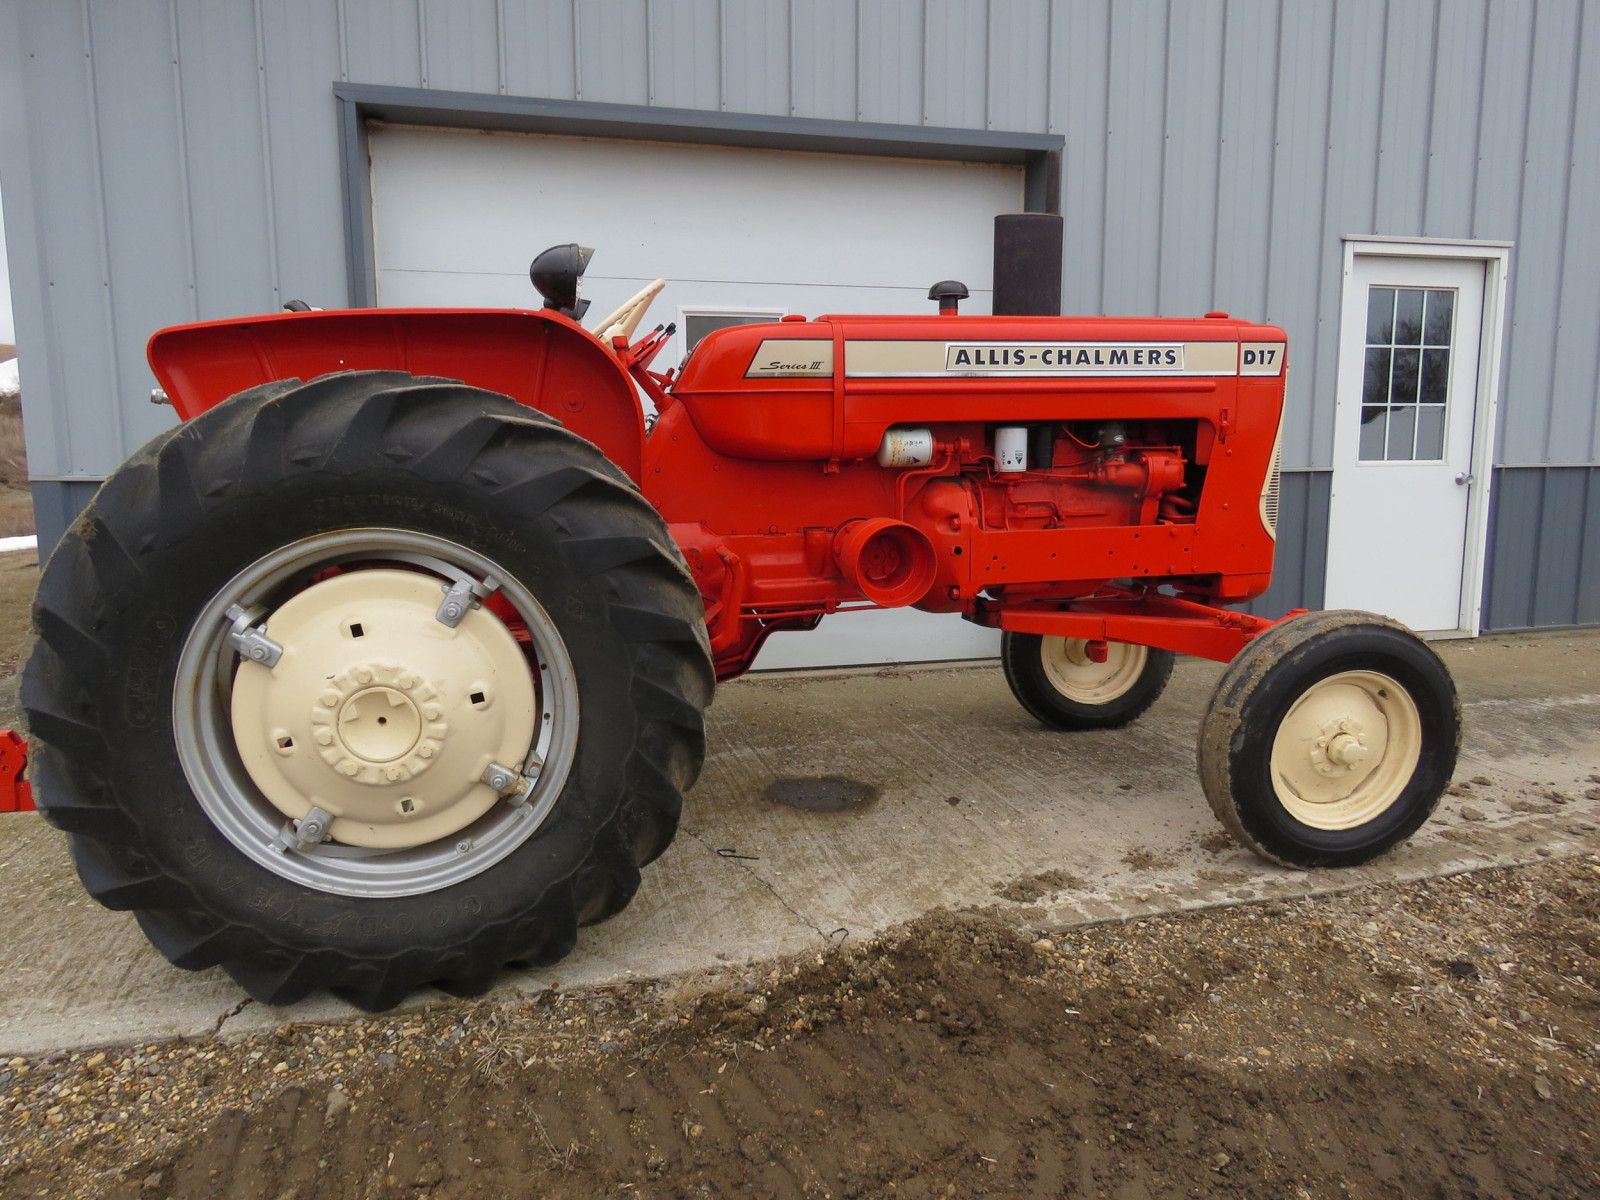 Allis Chalmers D17 Tractor - Image 5